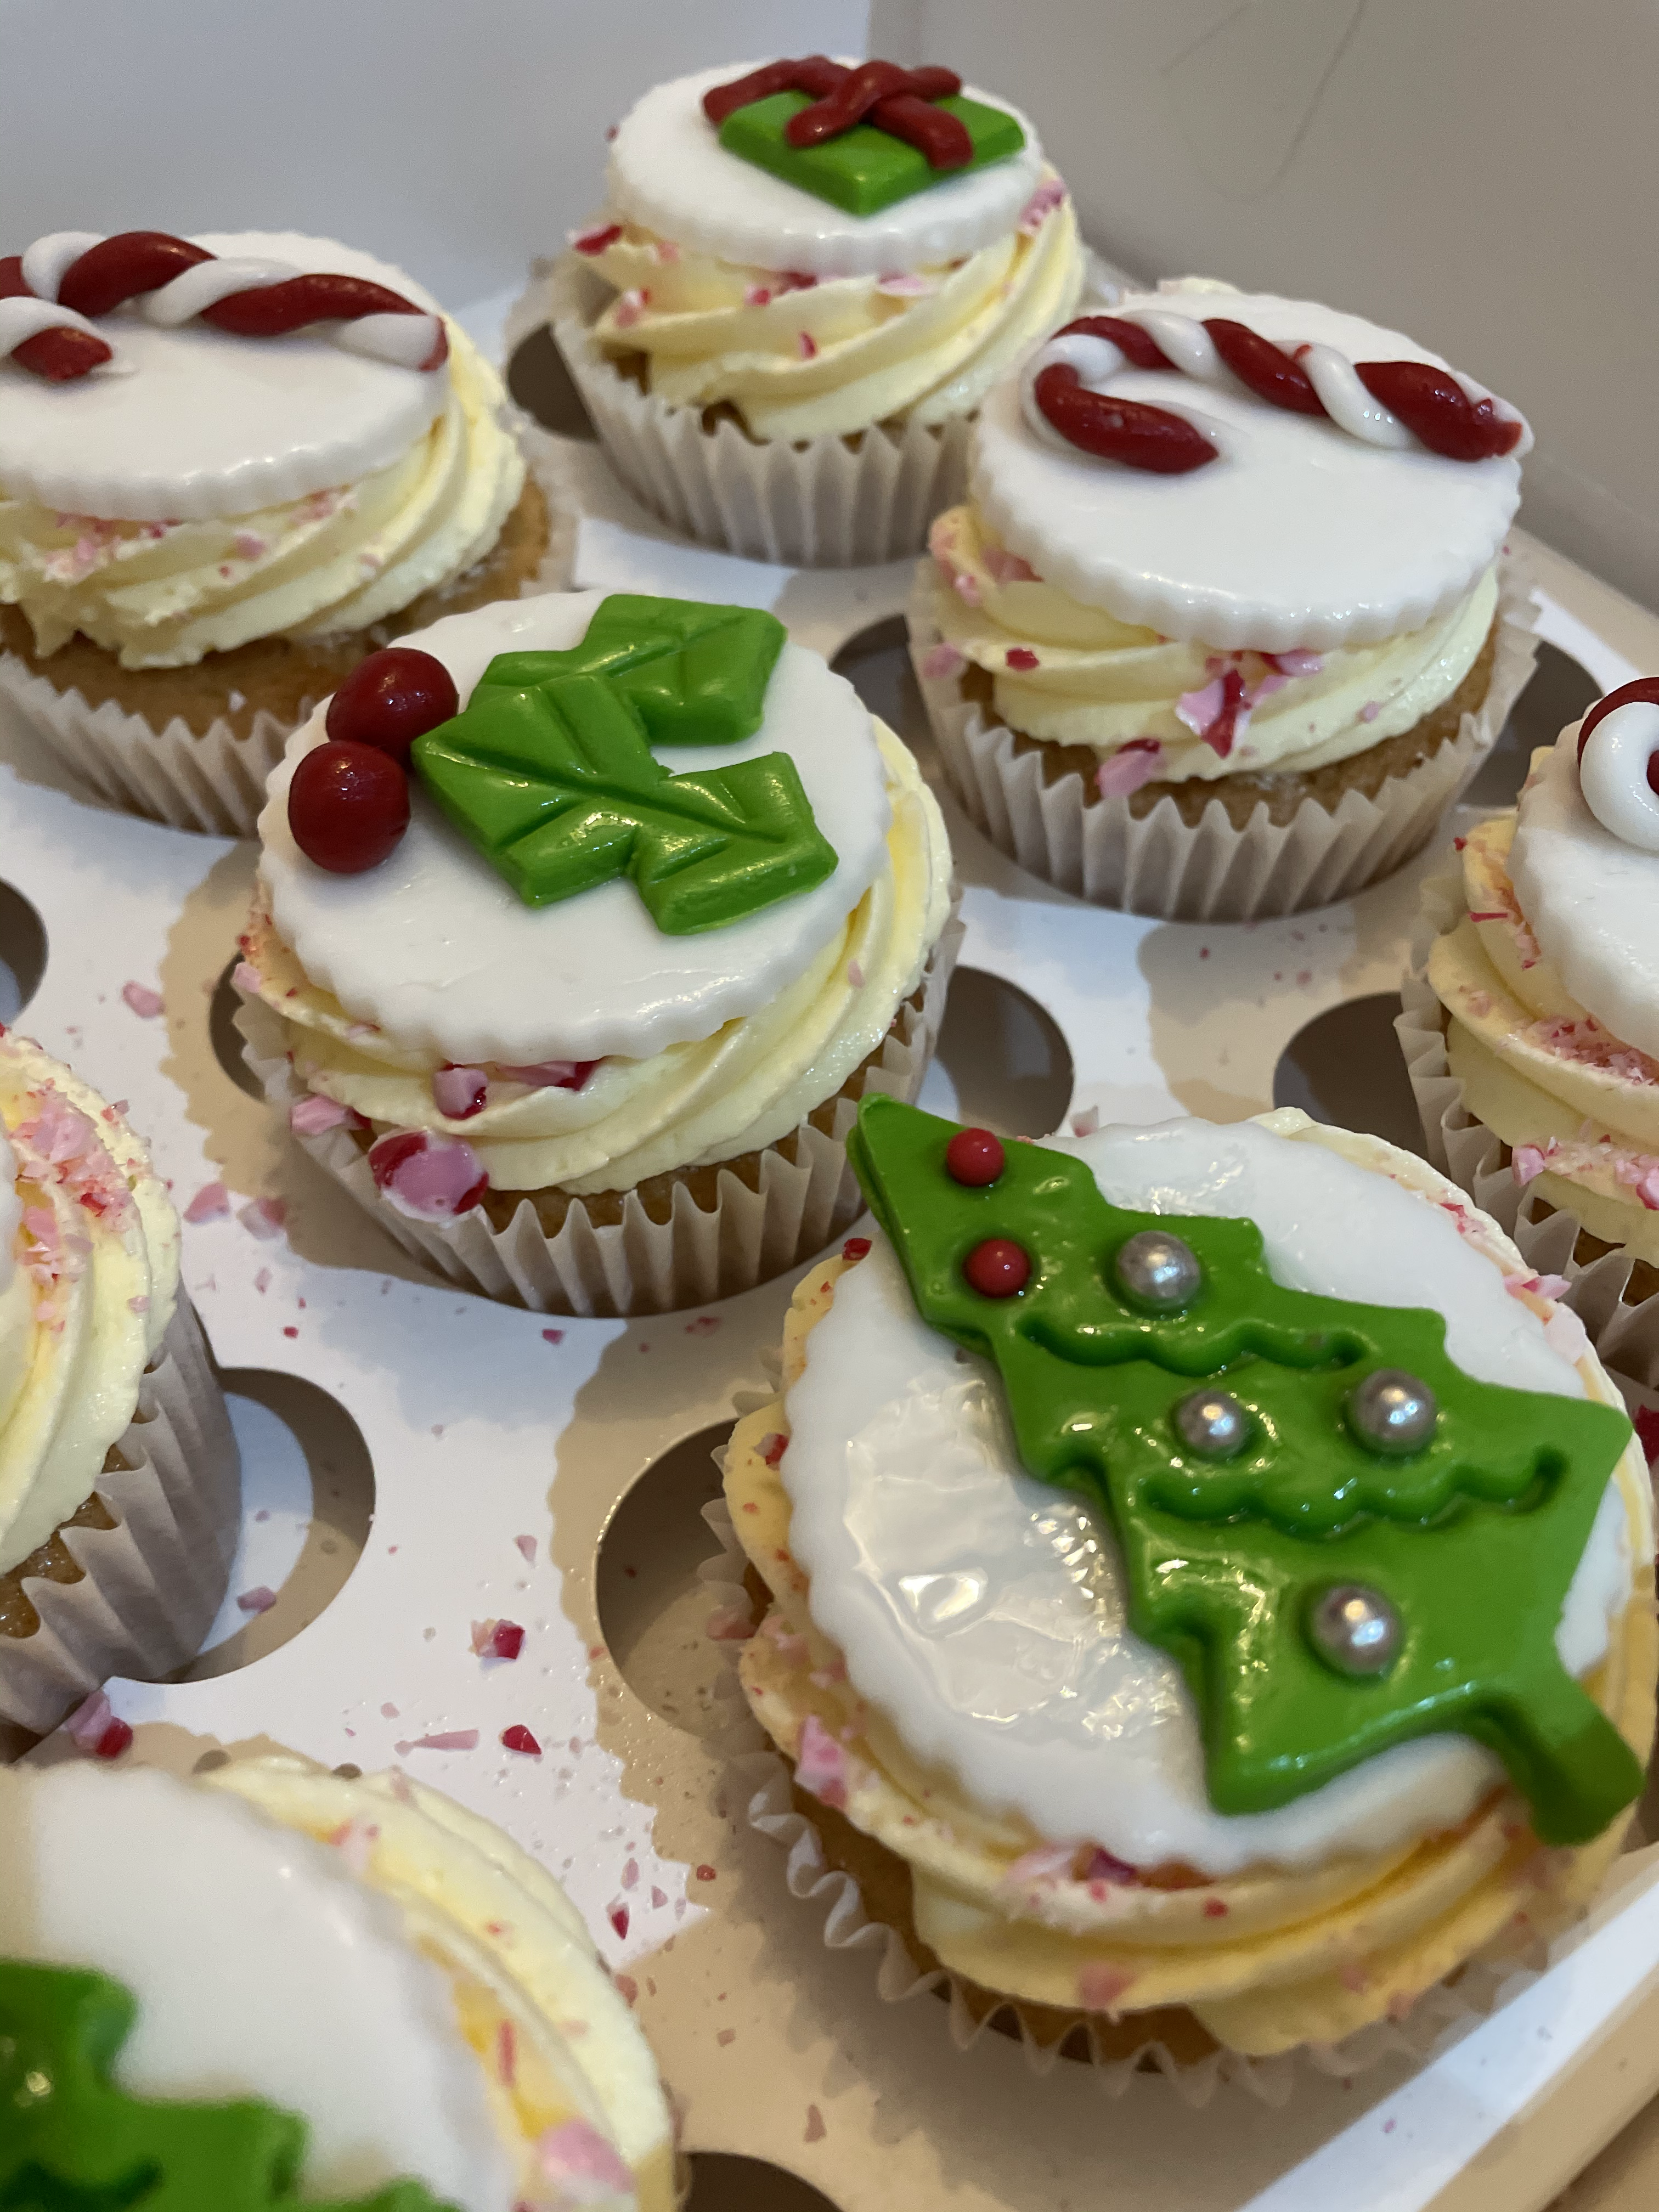 26.Christmas Themed Cupcakes